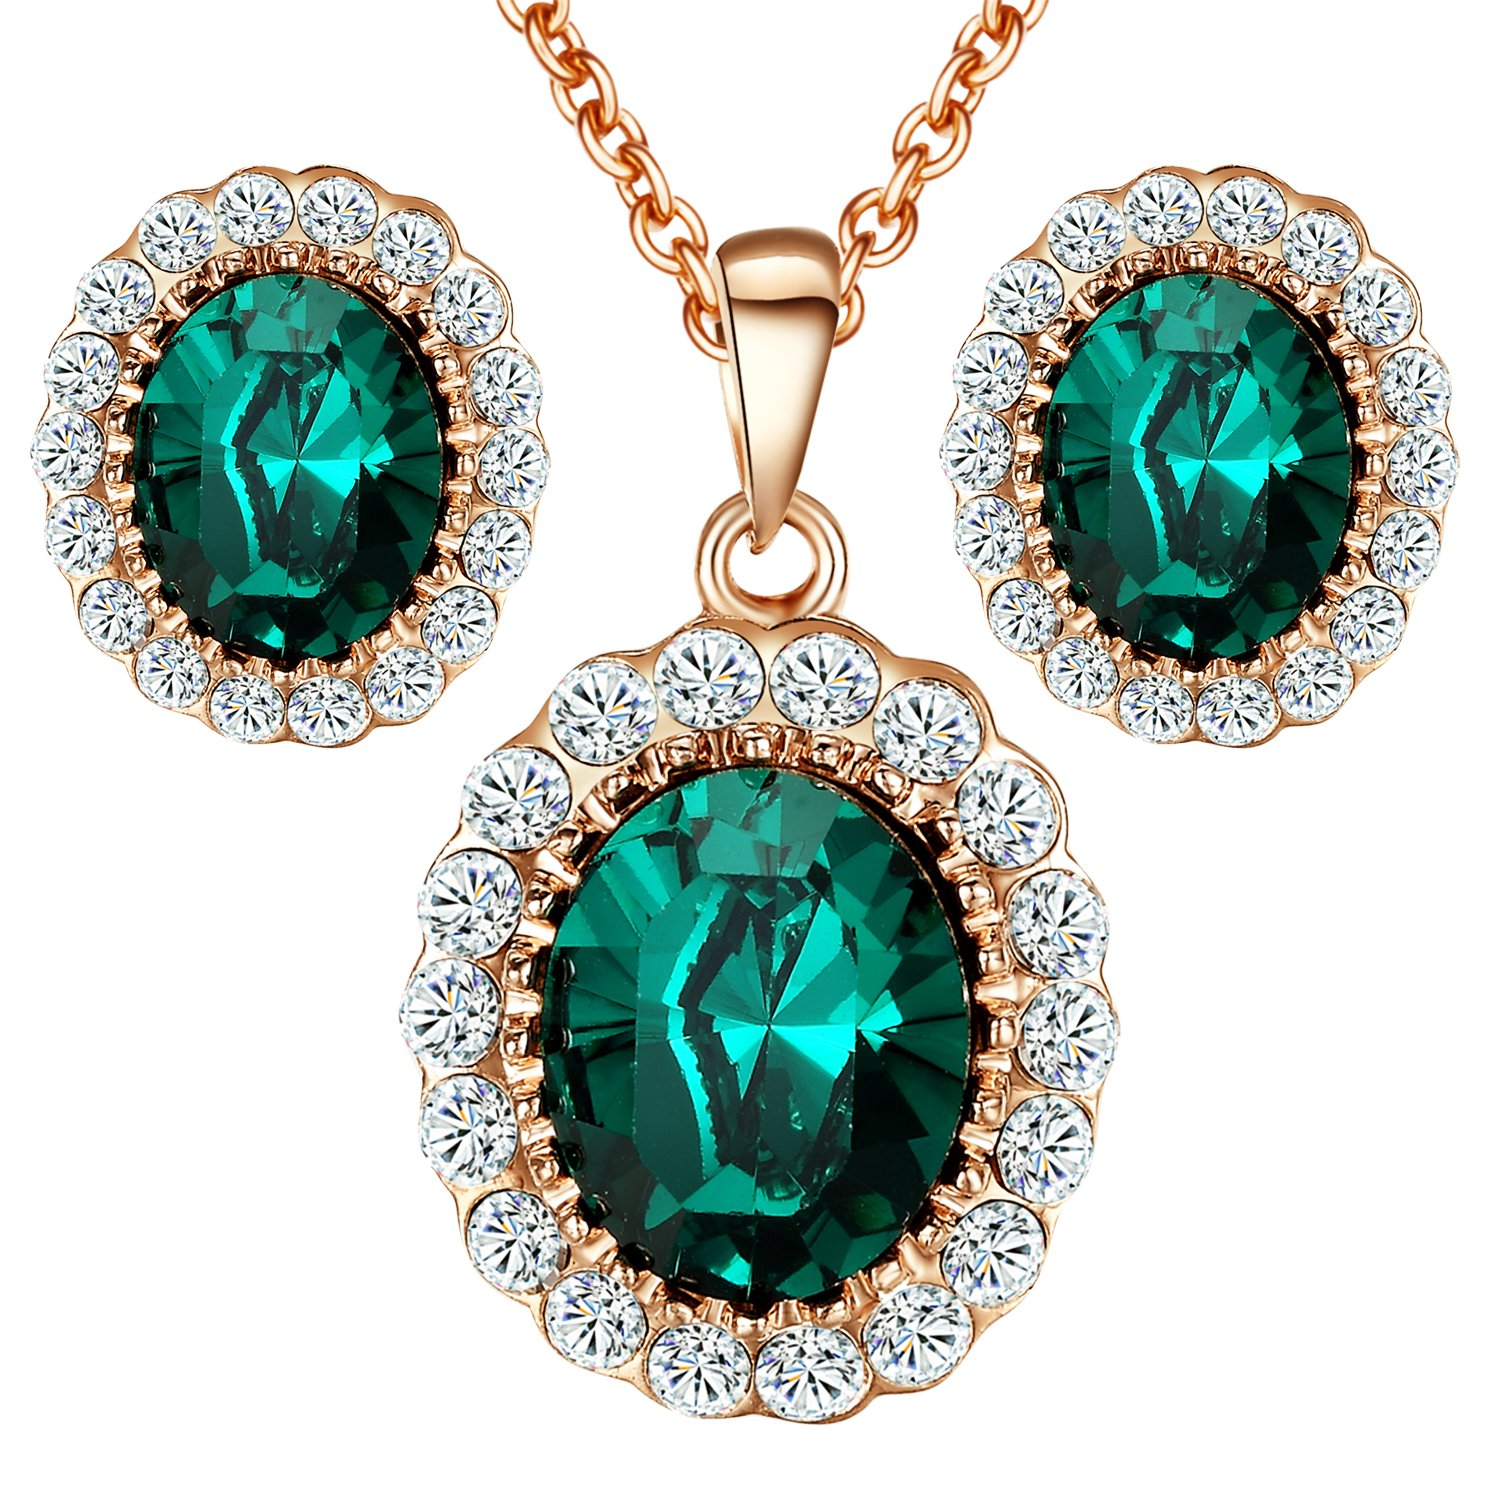 Yoursfs Kate Middleton Style Jewelry Set Green Crystal Cubic Zirconia Halo Necklace and Stud Earrings Set